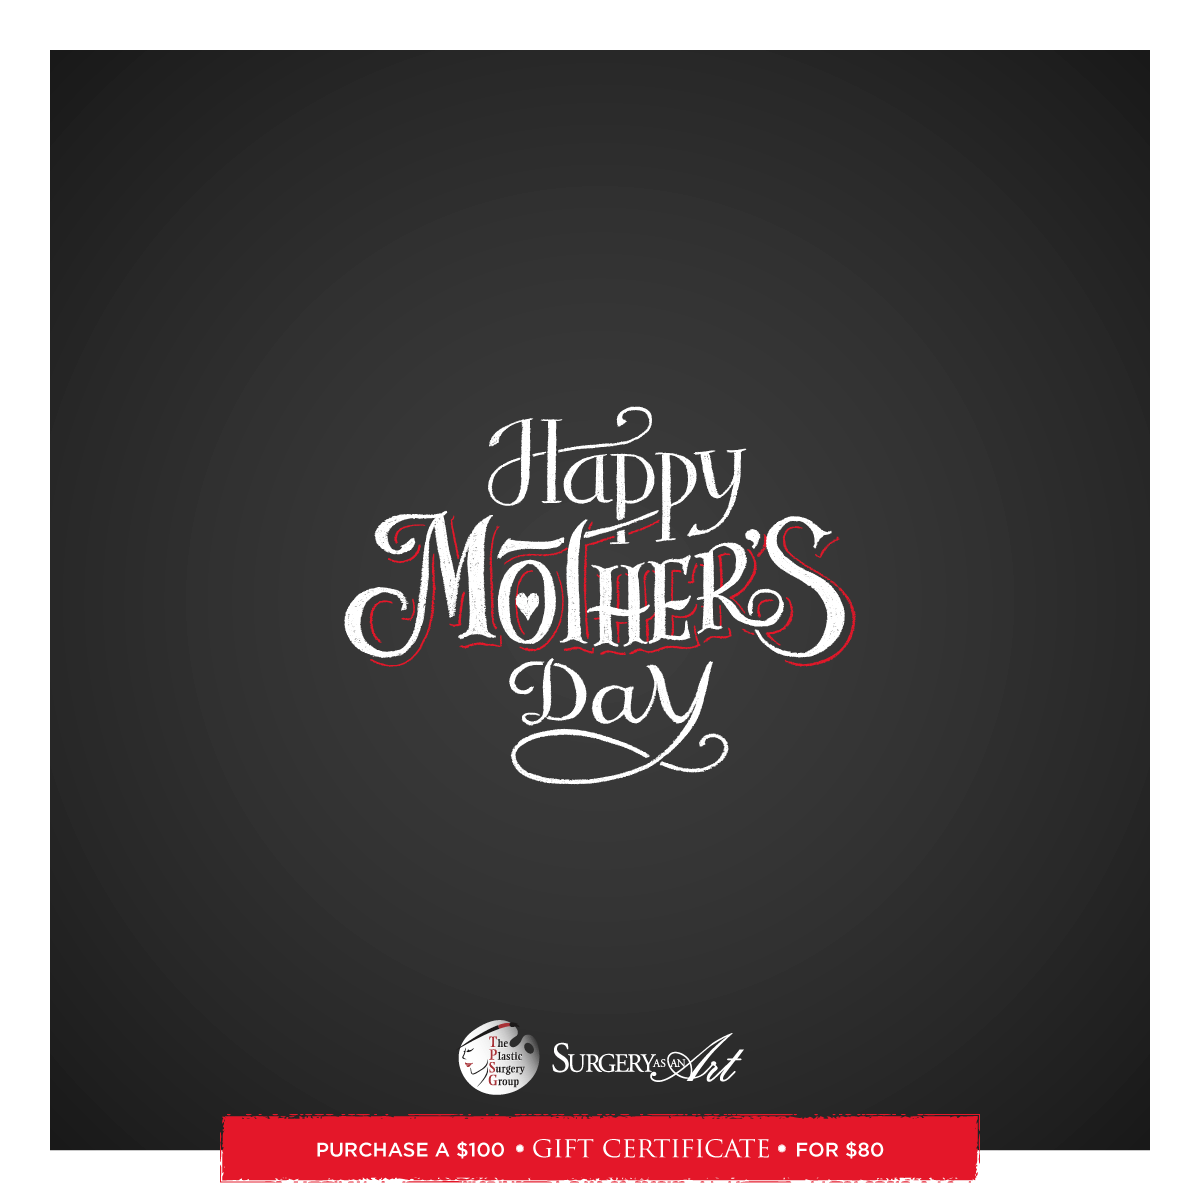 Happy Mother's Day from TPSG